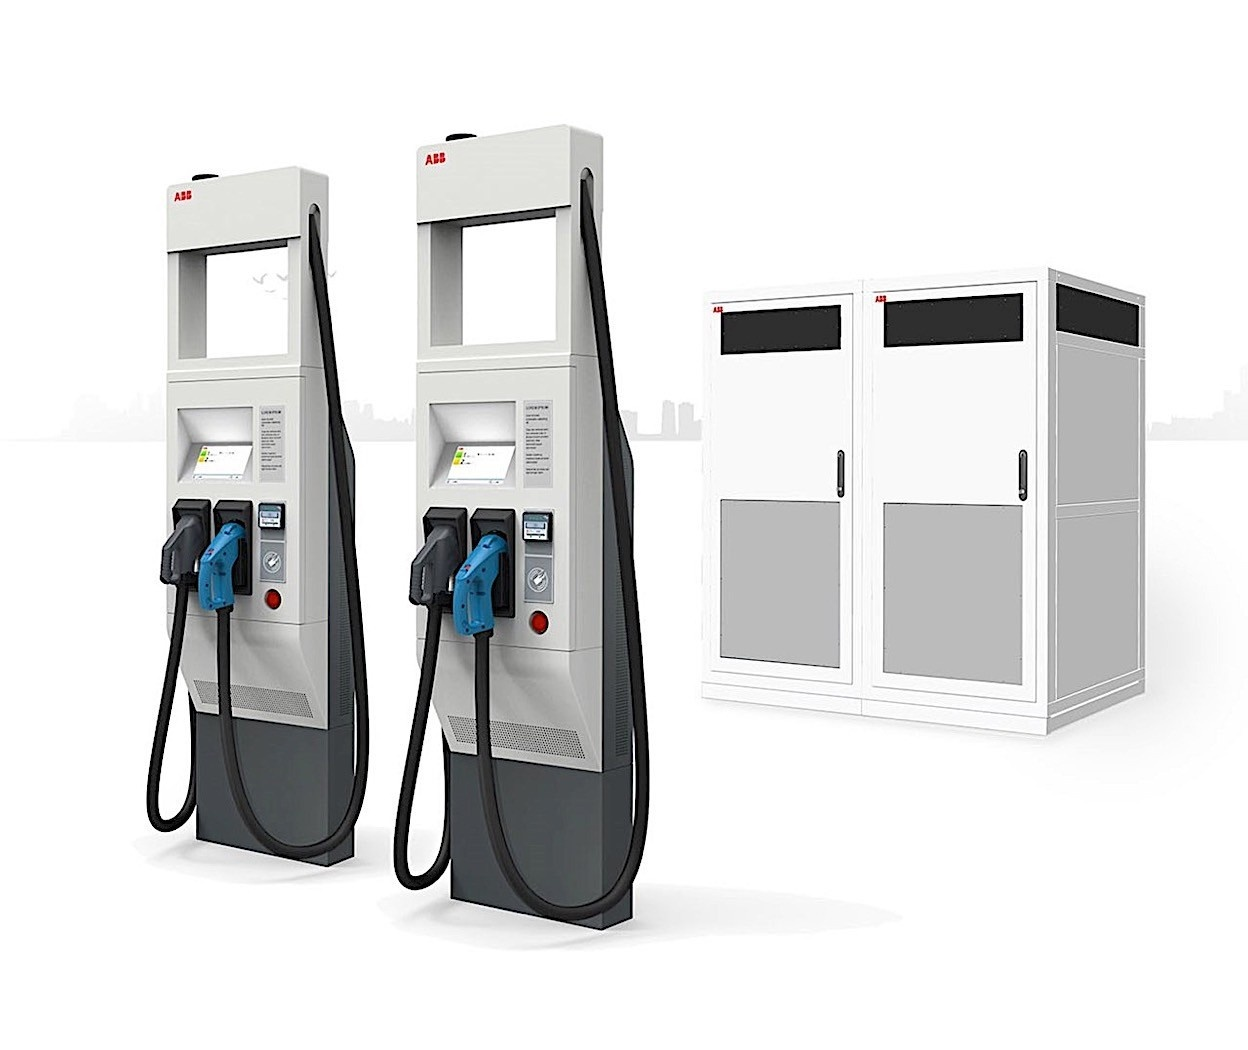 terra-high-power-charger-to-juice-up-evs-in-just-eight-minutes_2